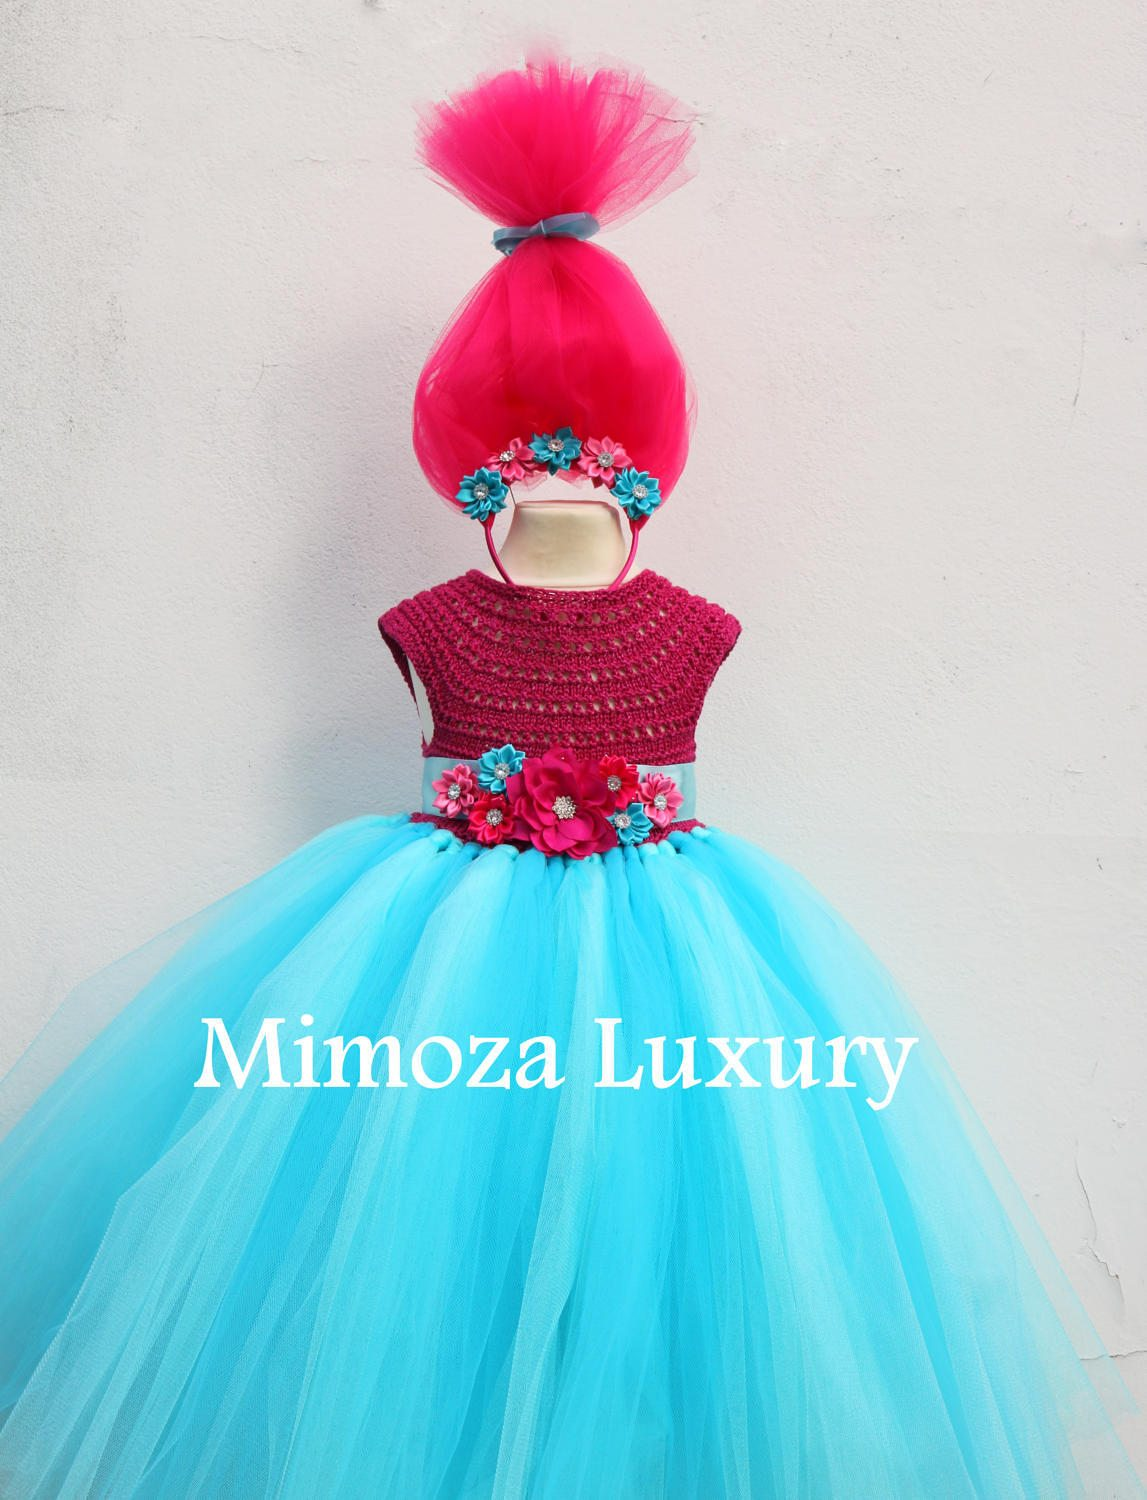 Poppy Troll Luxury Dress, Poppy troll birthday dress, poppy troll ...